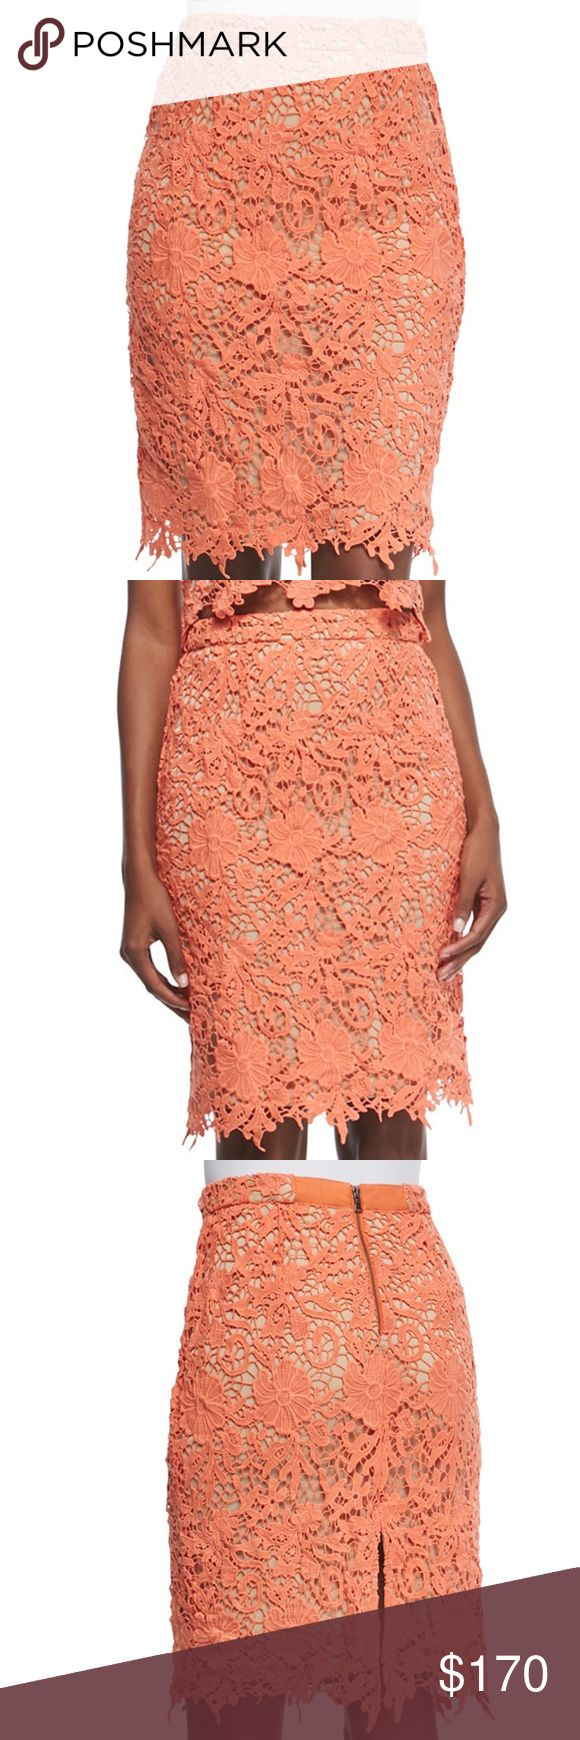 NWT Alice + Olivia FARRELL LACE PENCIL SKIRT Crafted from the finest lace, Alice + Olivia's floral crochet Farrel skirt is a refined daytime option.  Featuring a back zip and a scalloped hem, this midi style is finished in a coral hue.  Wear yours with delicate sandal heels and a structured top. Alice + Olivia Skirts Mini